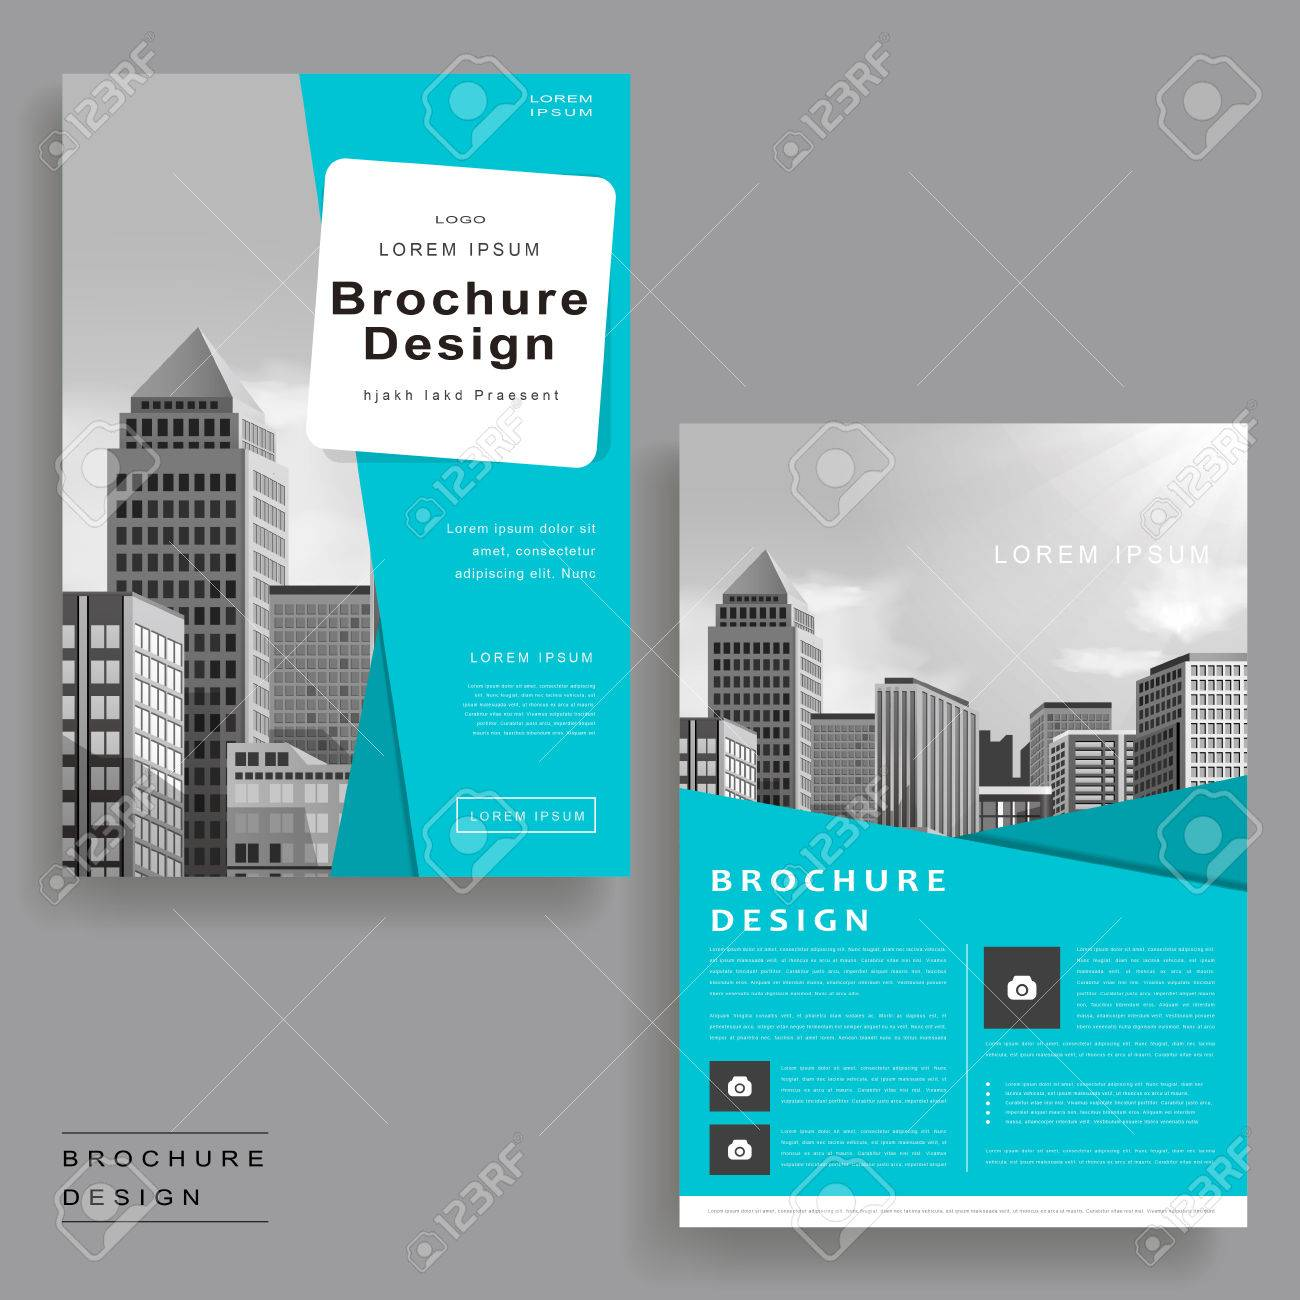 Modern Brochure Template Design With Urban Landscape Royalty Free - Modern brochure template